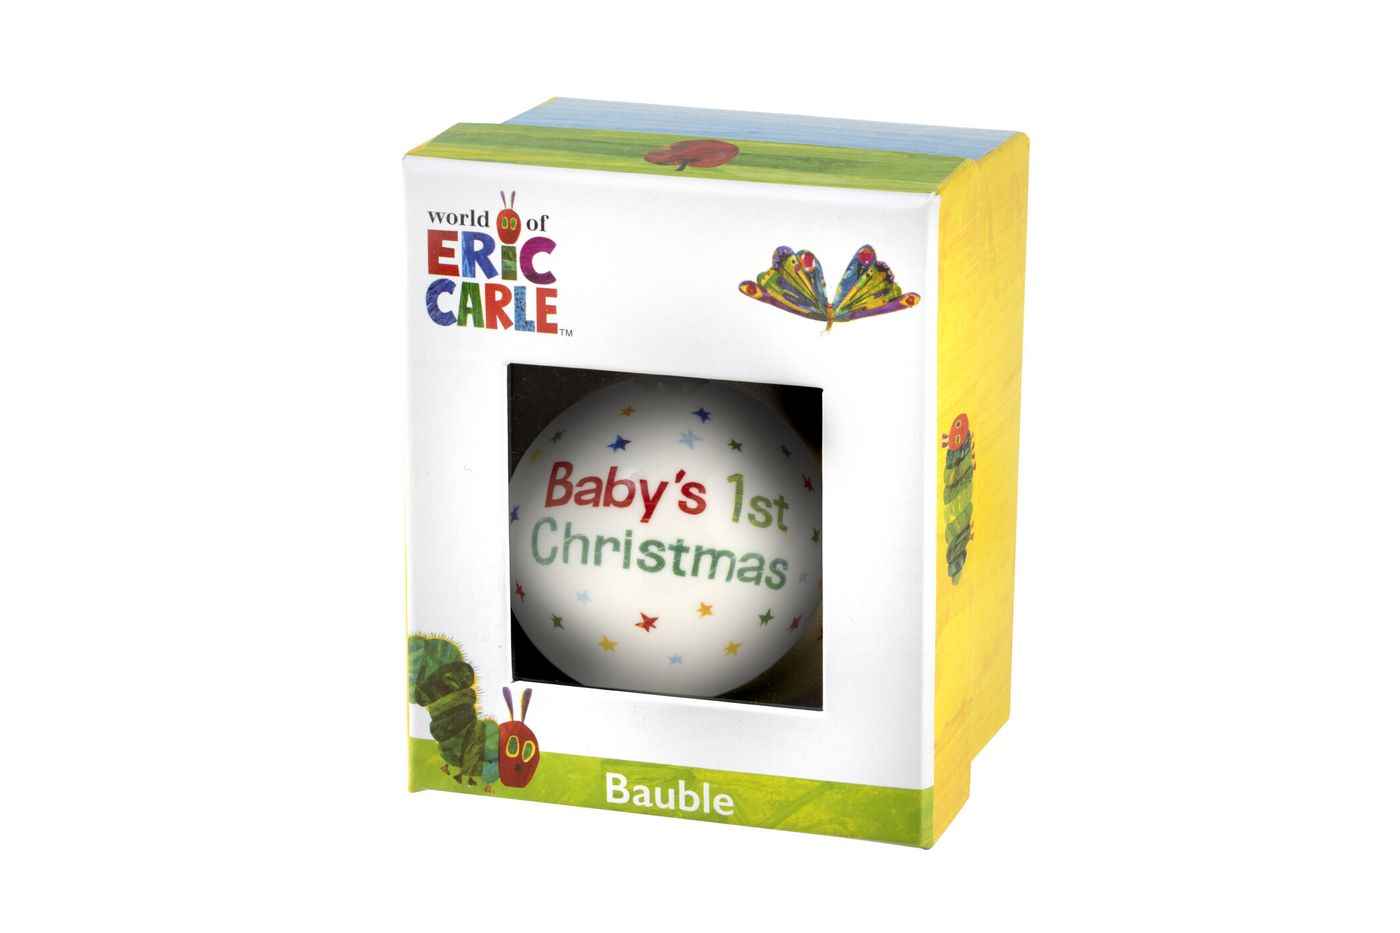 Portmeirion The Very Hungry Caterpillar by Eric Carle Bauble Baby 1st Xmas thumb 3